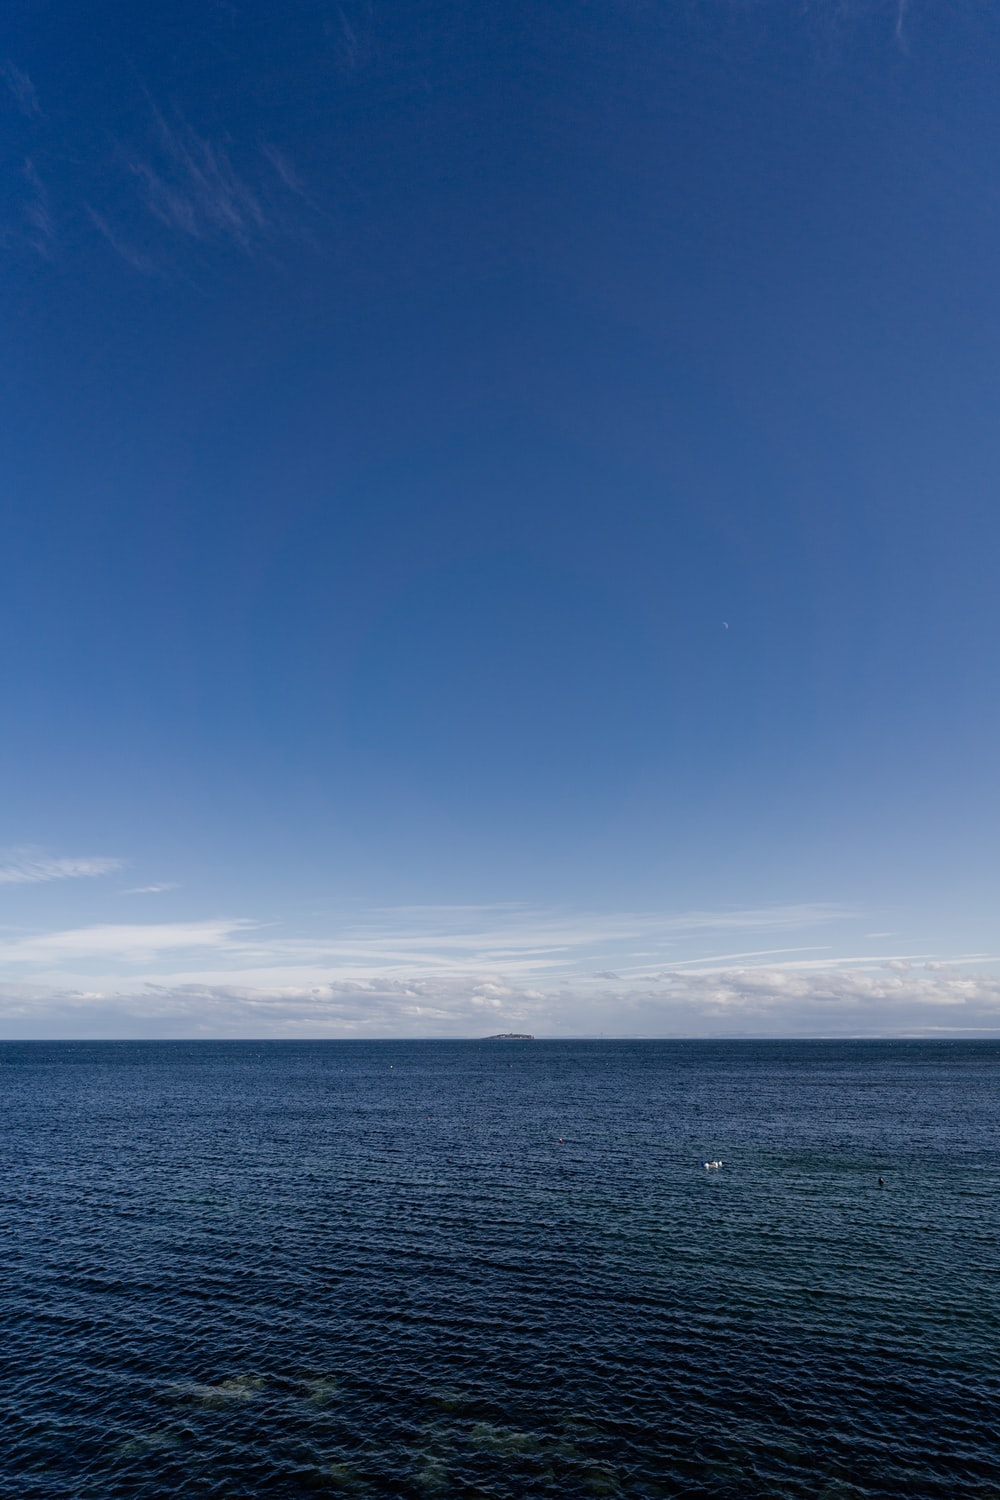 blue sky over sea during daytime